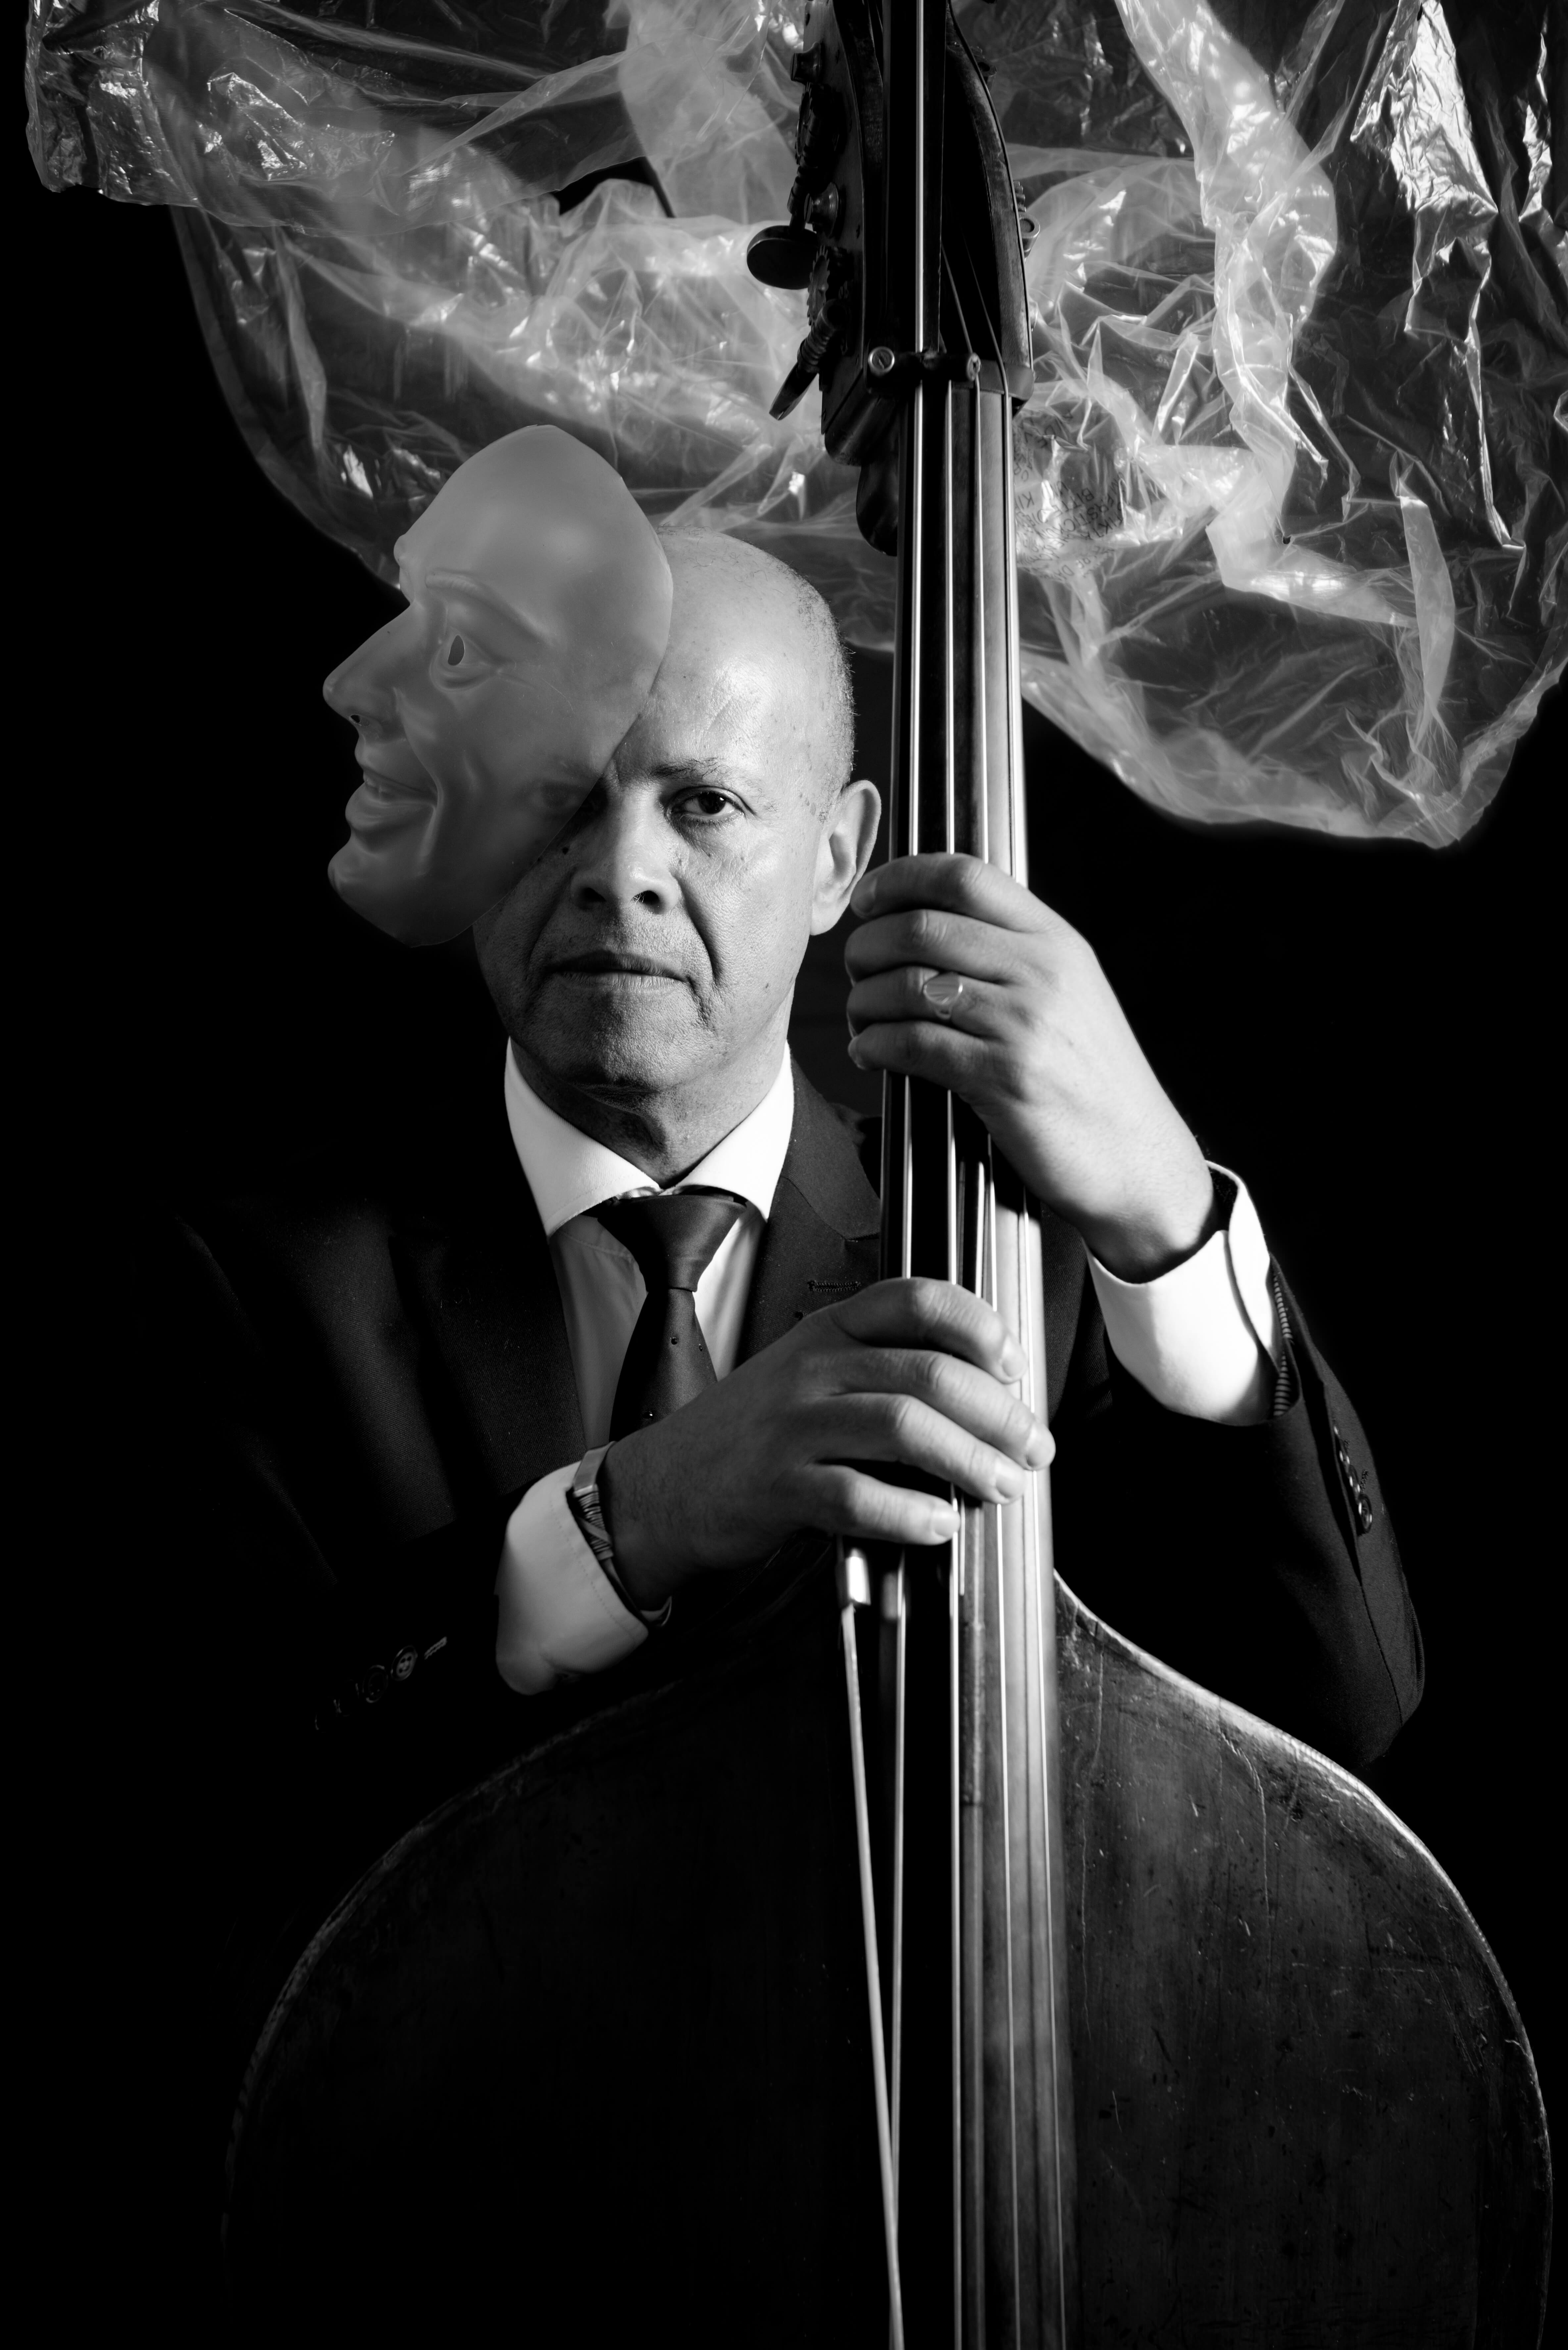 World's best double bass player with plastic and a mask.